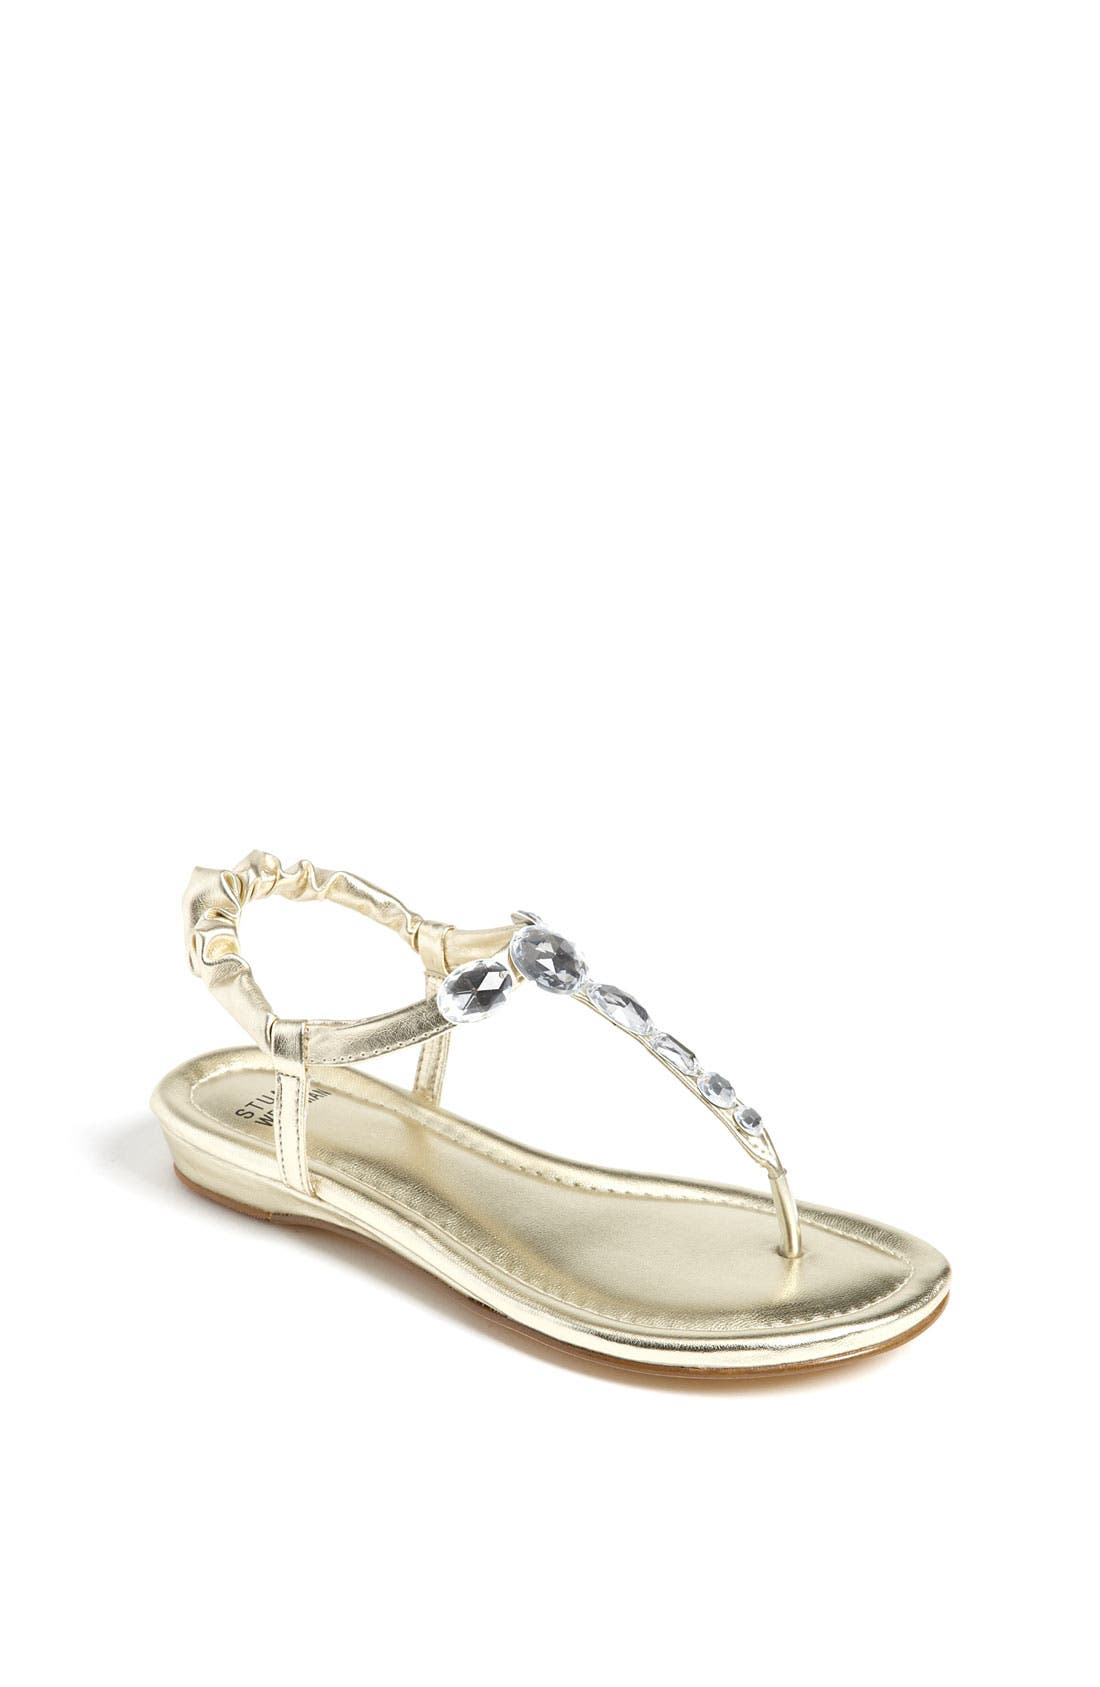 Alternate Image 1 Selected - Stuart Weitzman 'Bella' Sandal (Toddler, Little Kid & Big Kid)